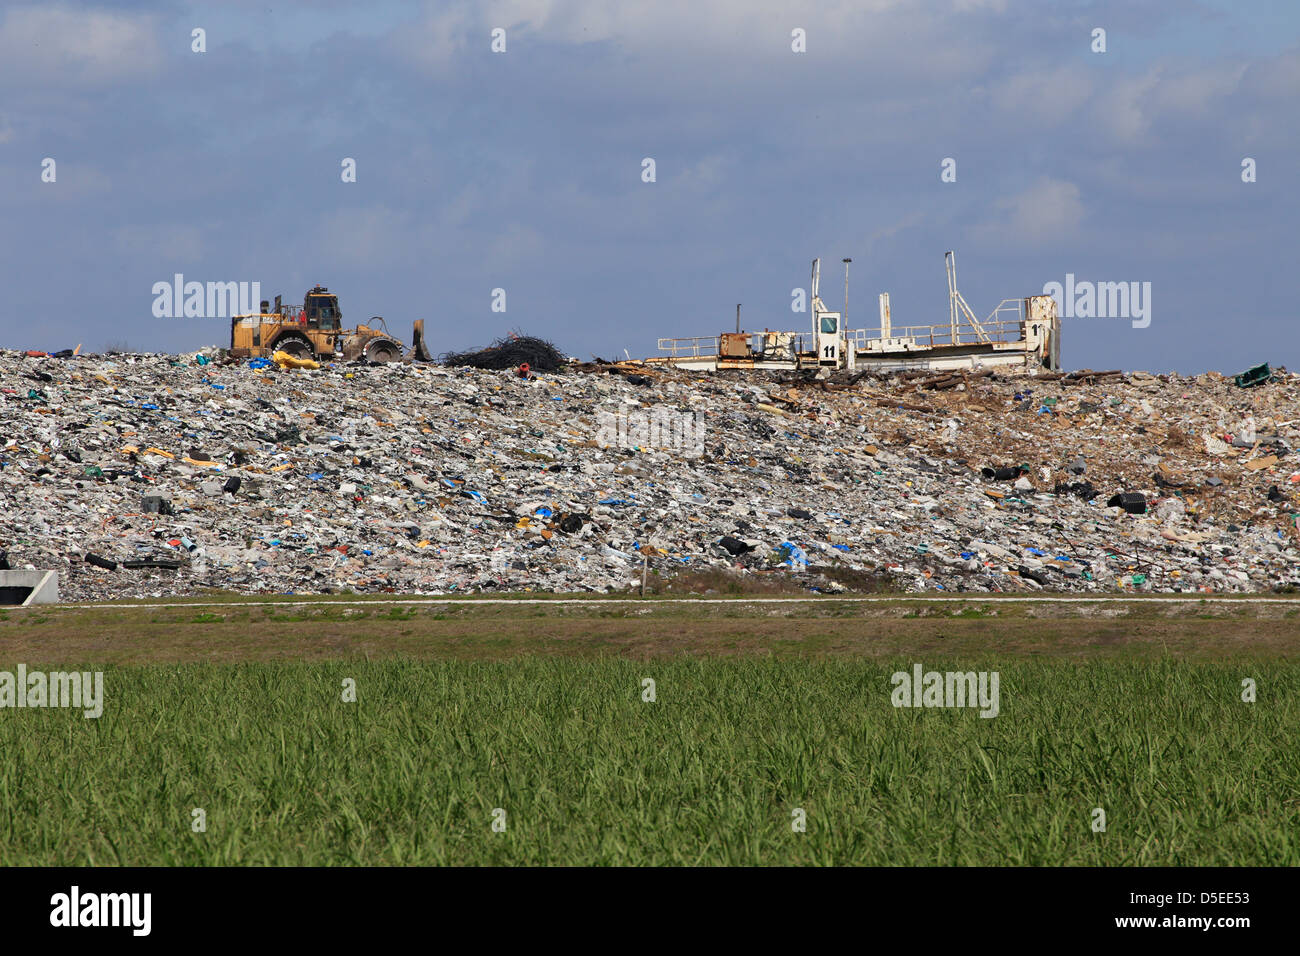 a solid waste garbage landfill in Florida in the USA - Stock Image